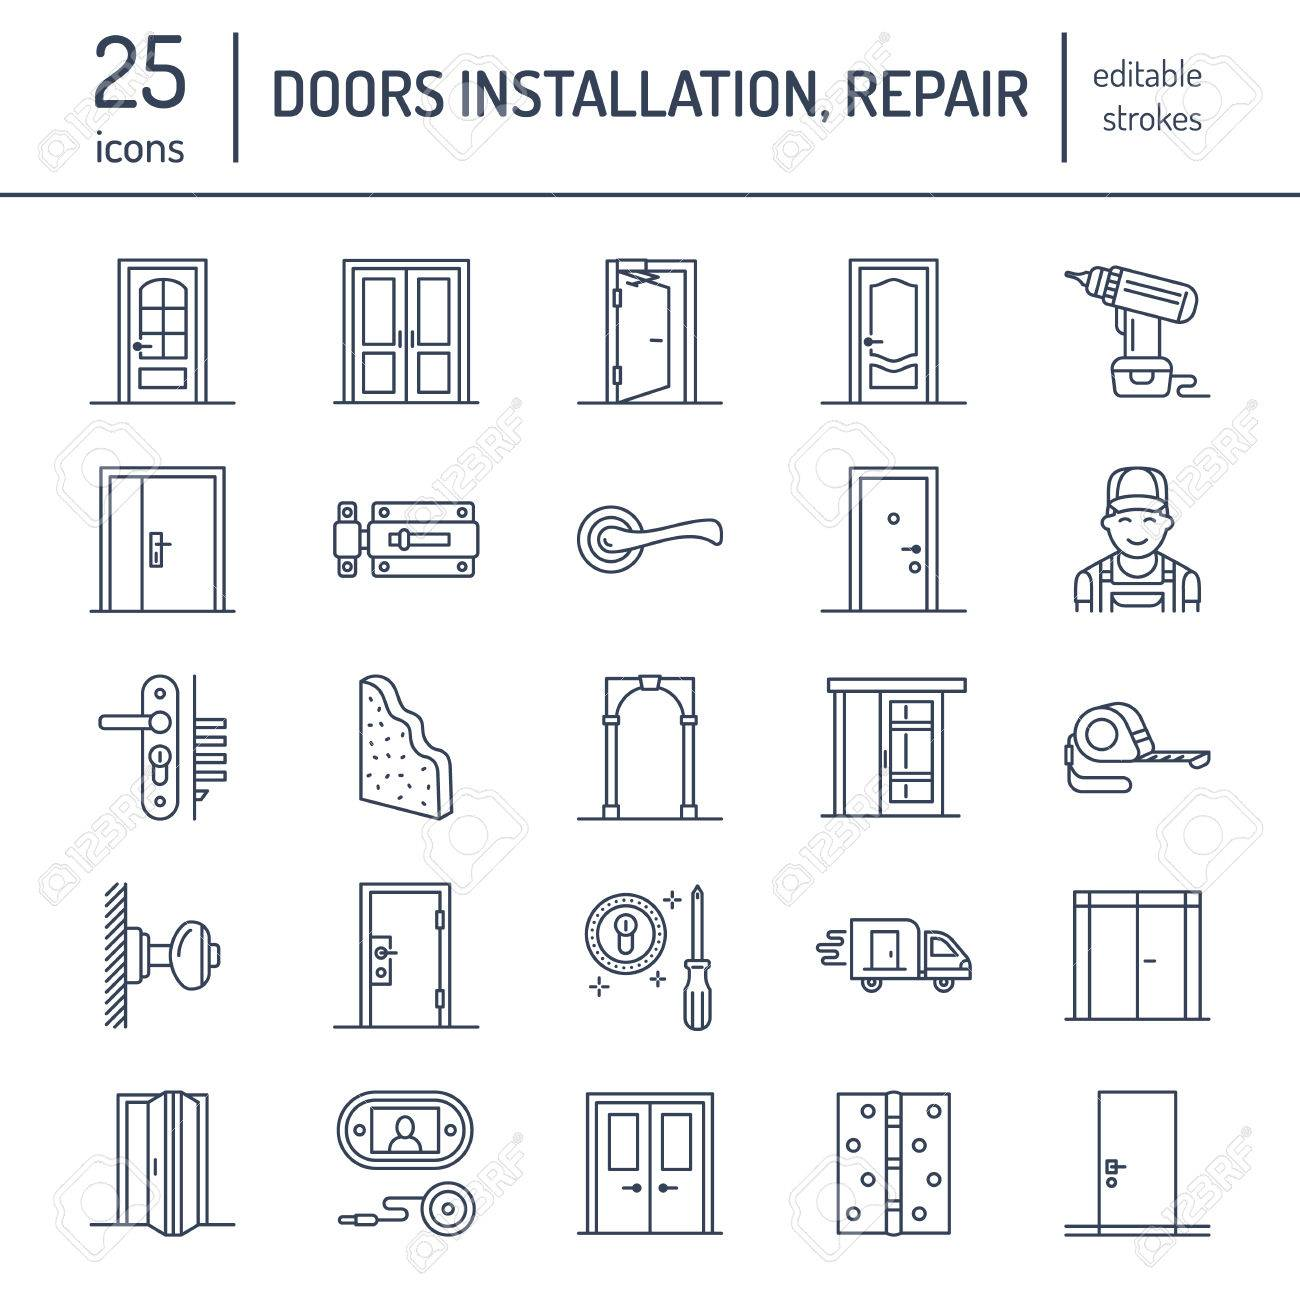 Decorating door types pics : Doors Installation, Repair Line Icons. Various Door Types, Handle ...